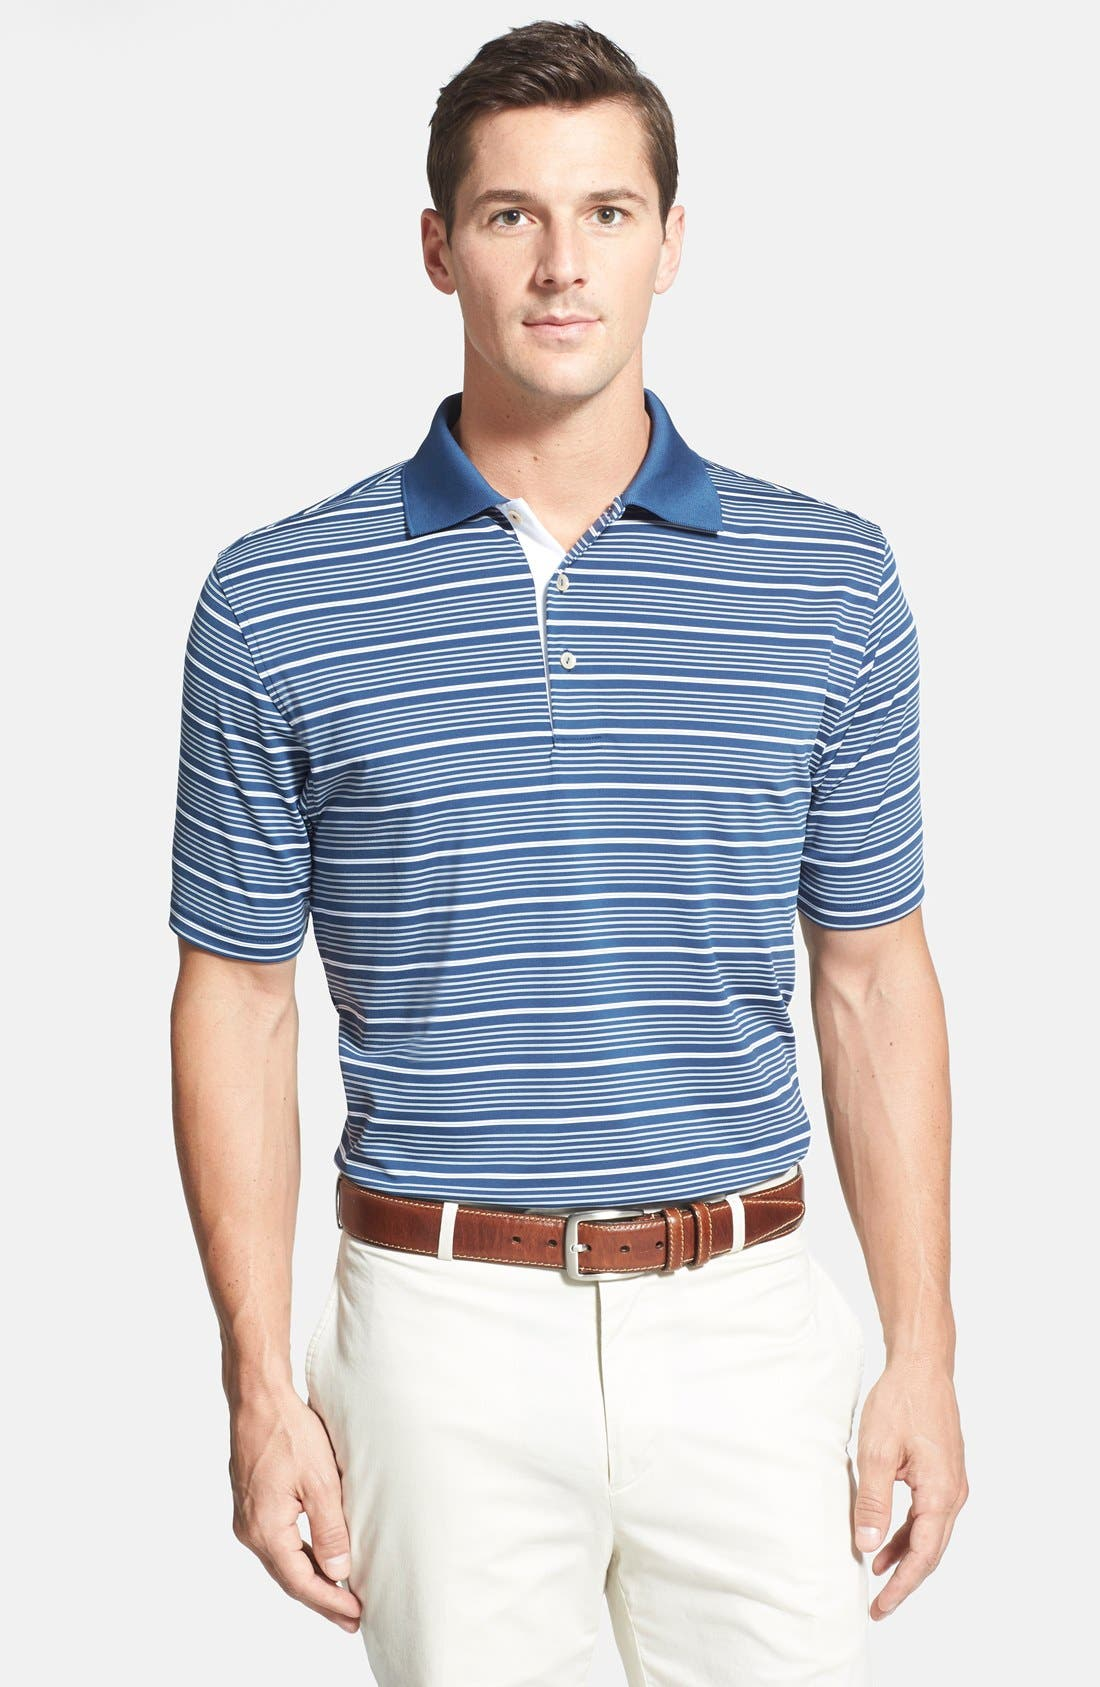 'Staley' Moisture Wicking Polo,                             Main thumbnail 1, color,